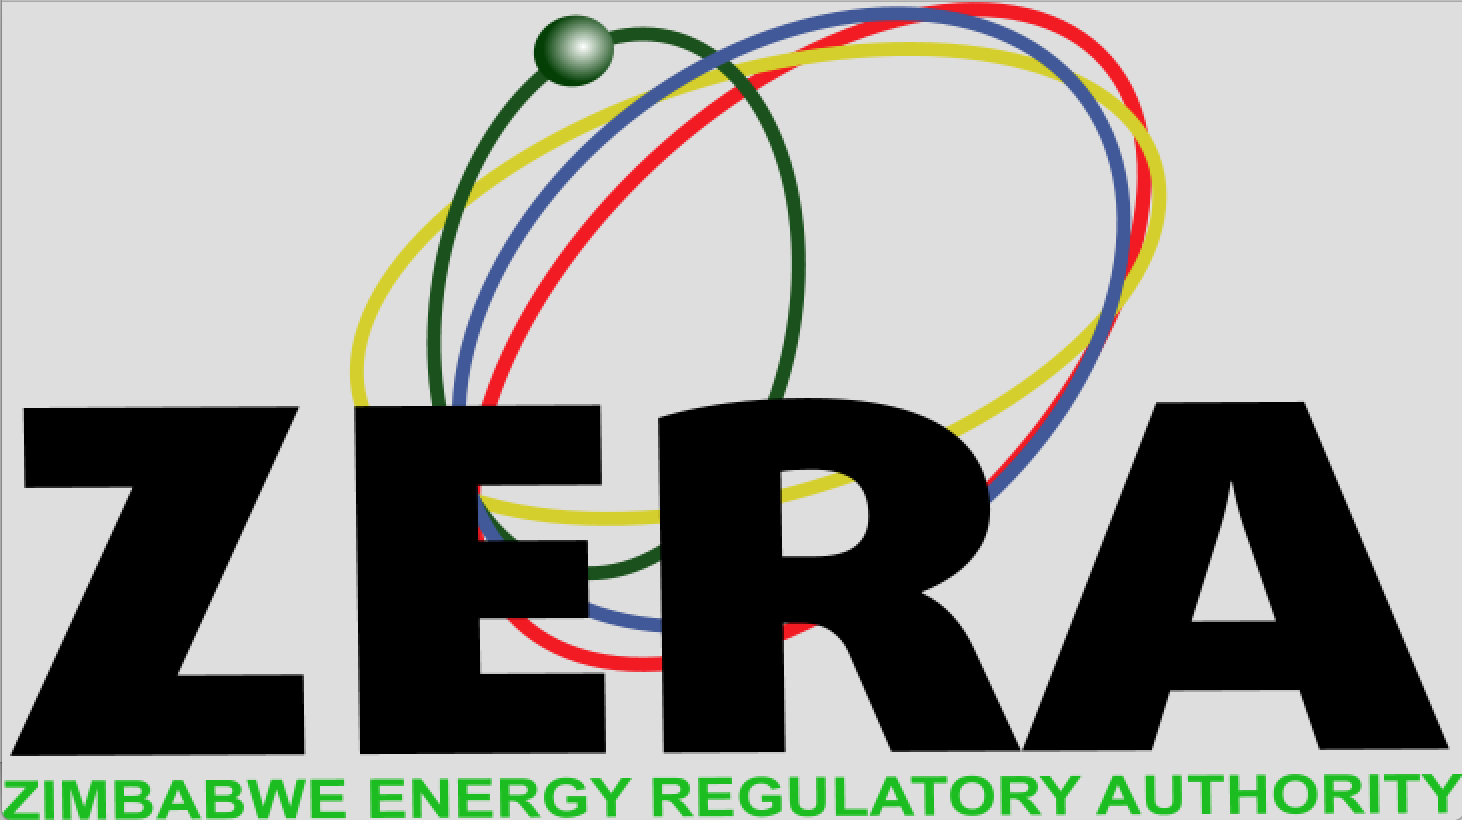 Zera seeks prepaid meter deals